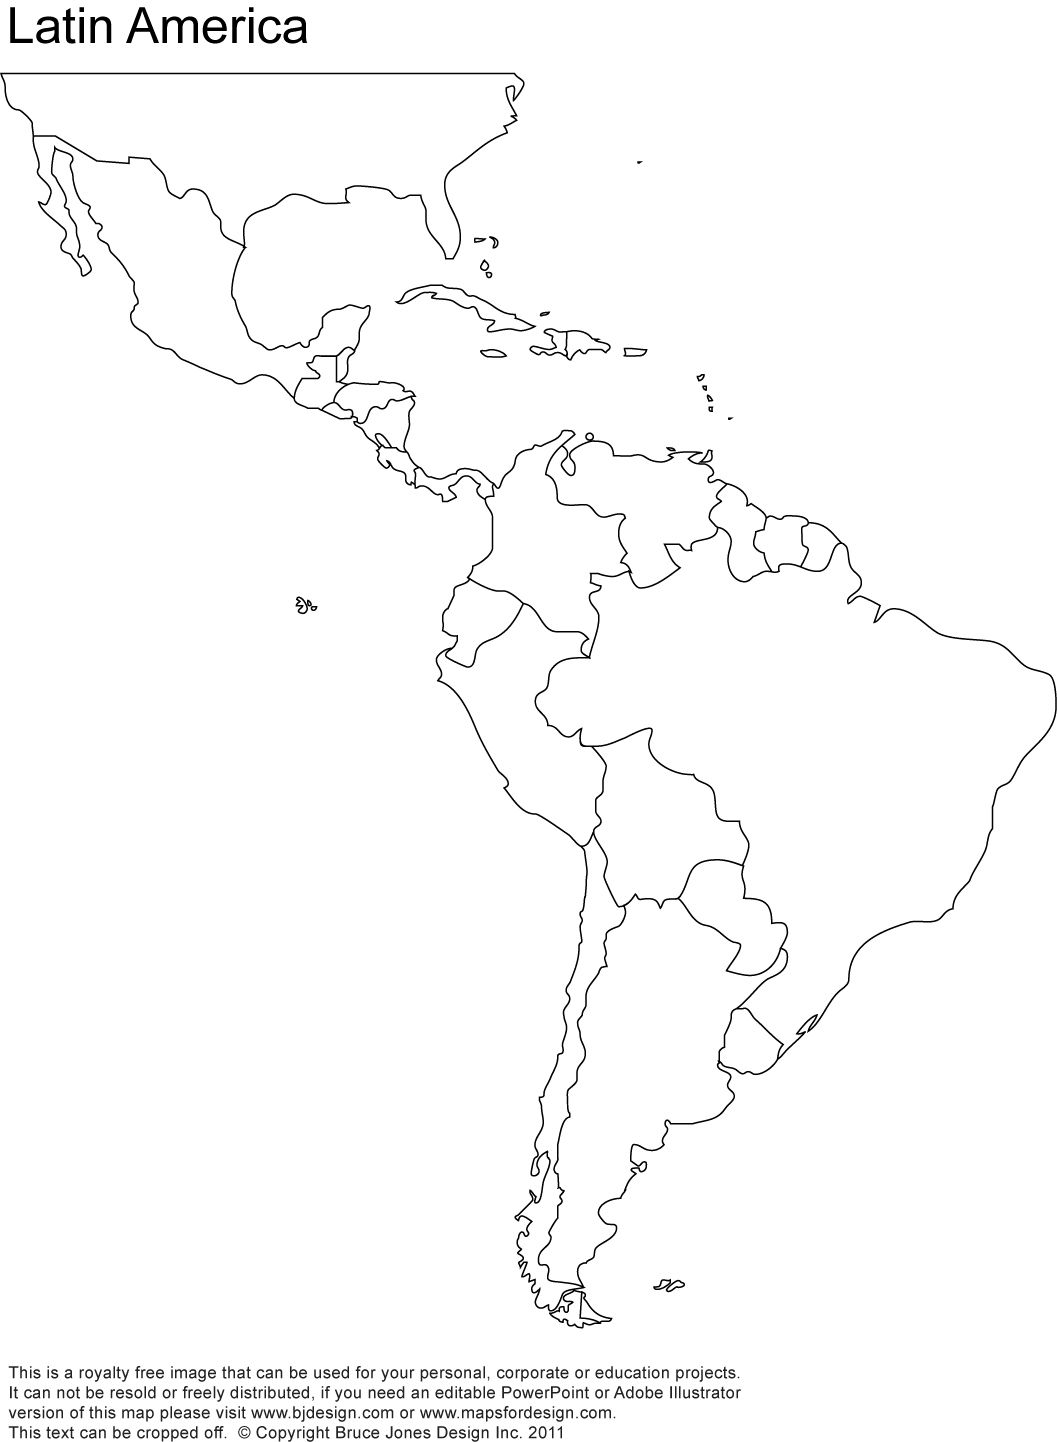 free blank map of north and south america | Latin America